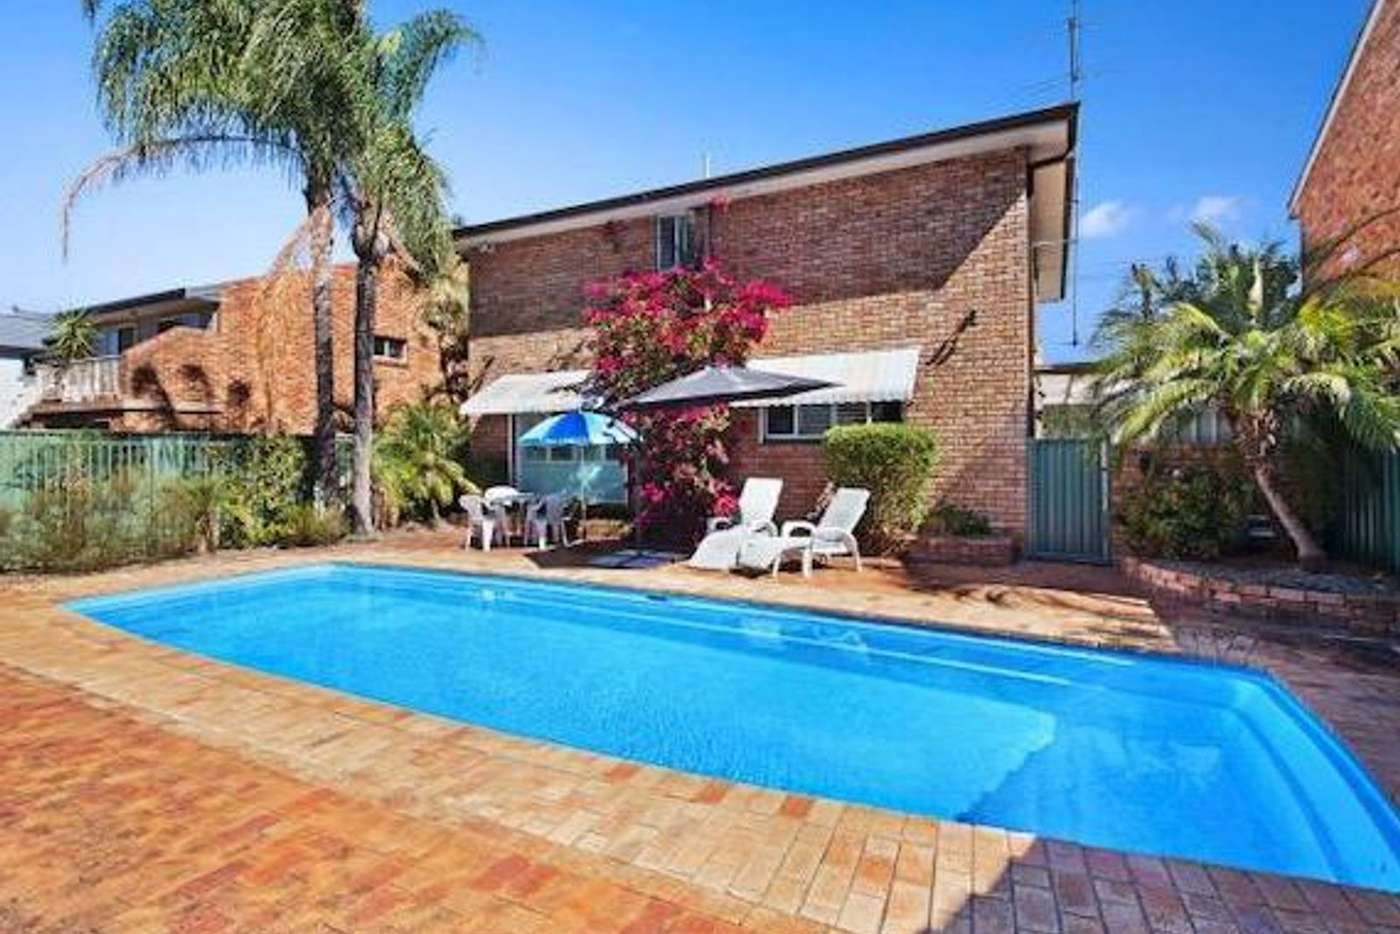 Main view of Homely studio listing, 8/346 Ocean View Road, Ettalong Beach NSW 2257